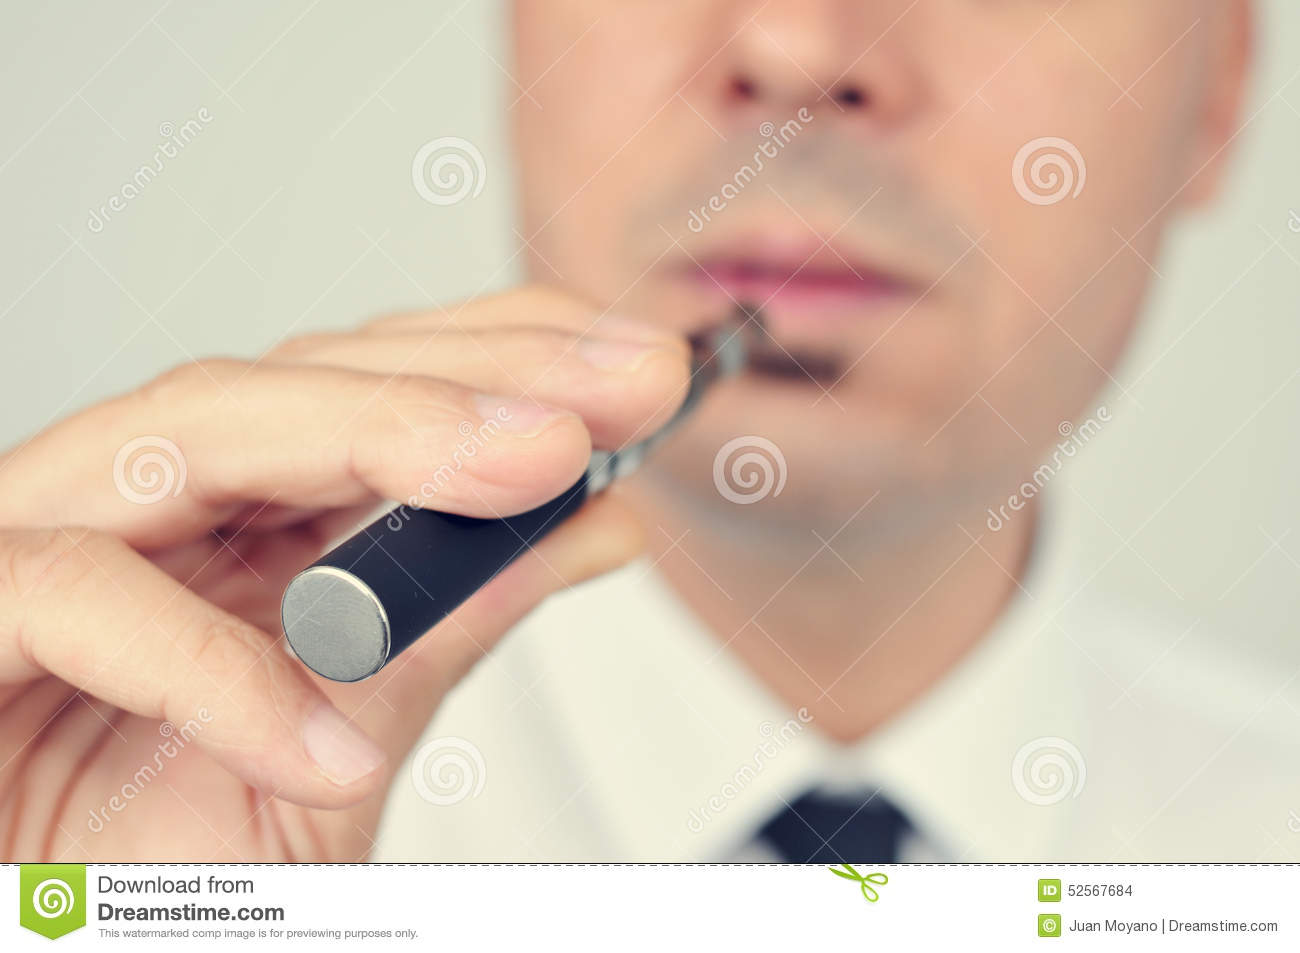 E cigarette eye irritation